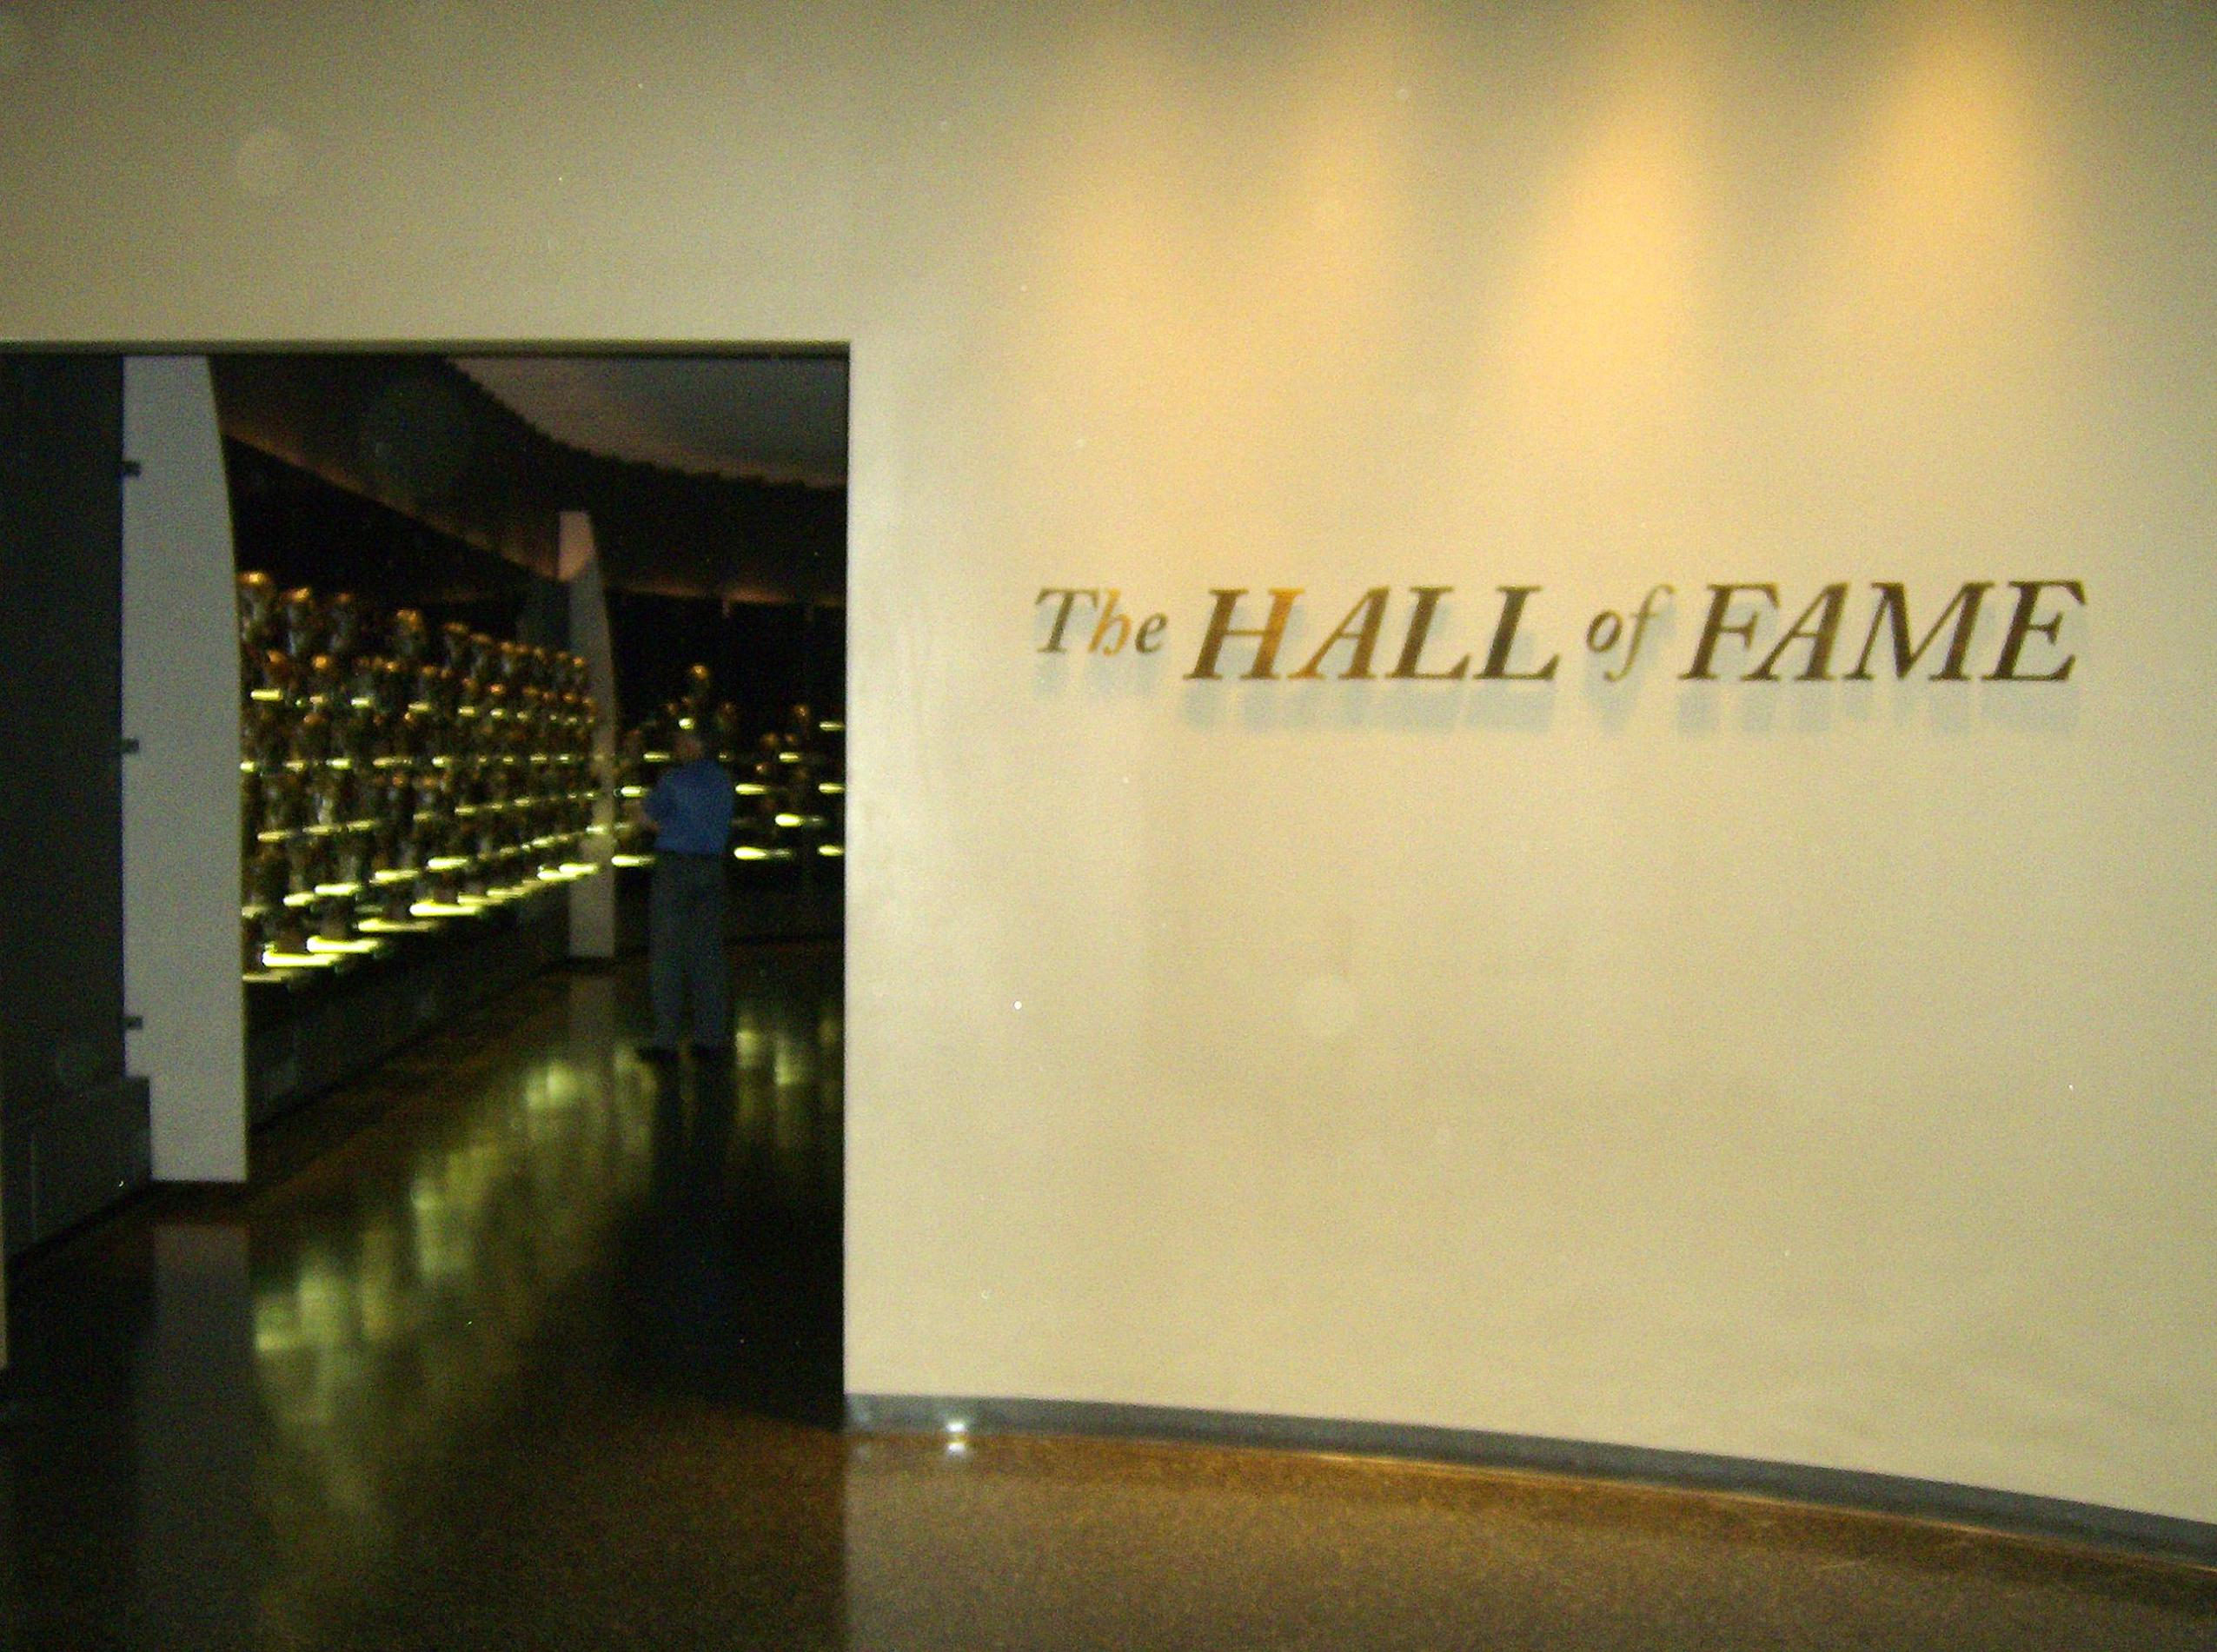 What is the hall